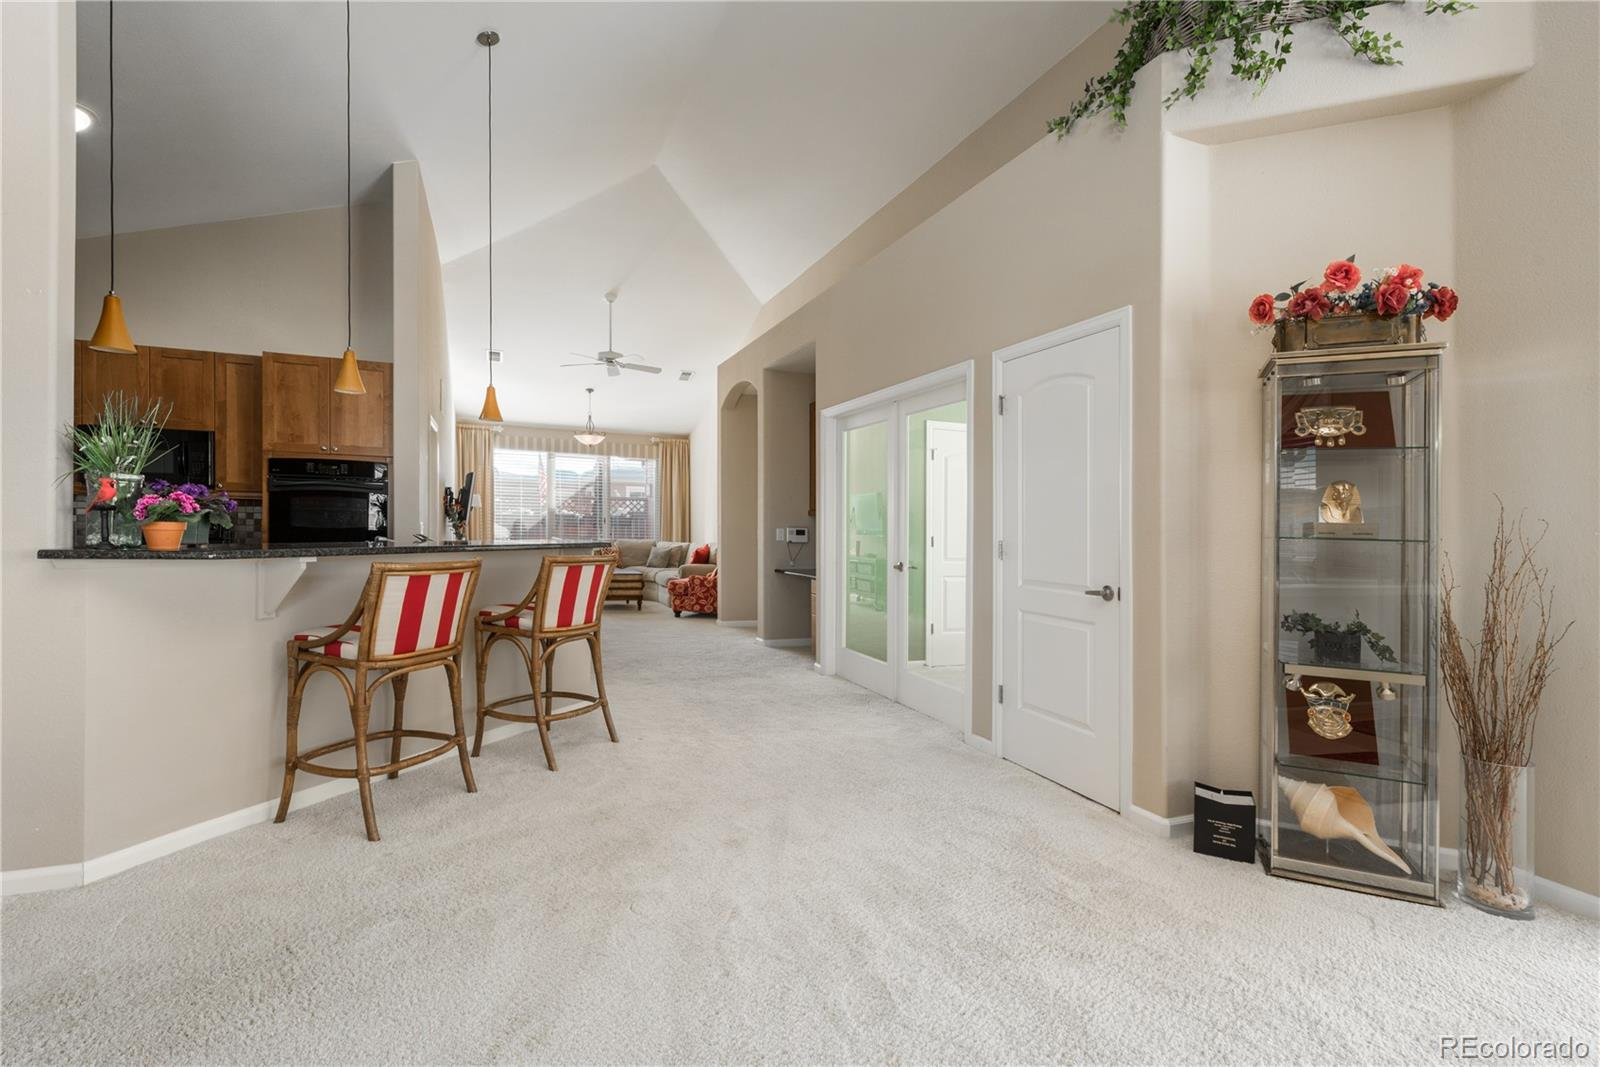 MLS# 2963083 - 8578 Gold Peak Drive #A, Highlands Ranch, CO 80130